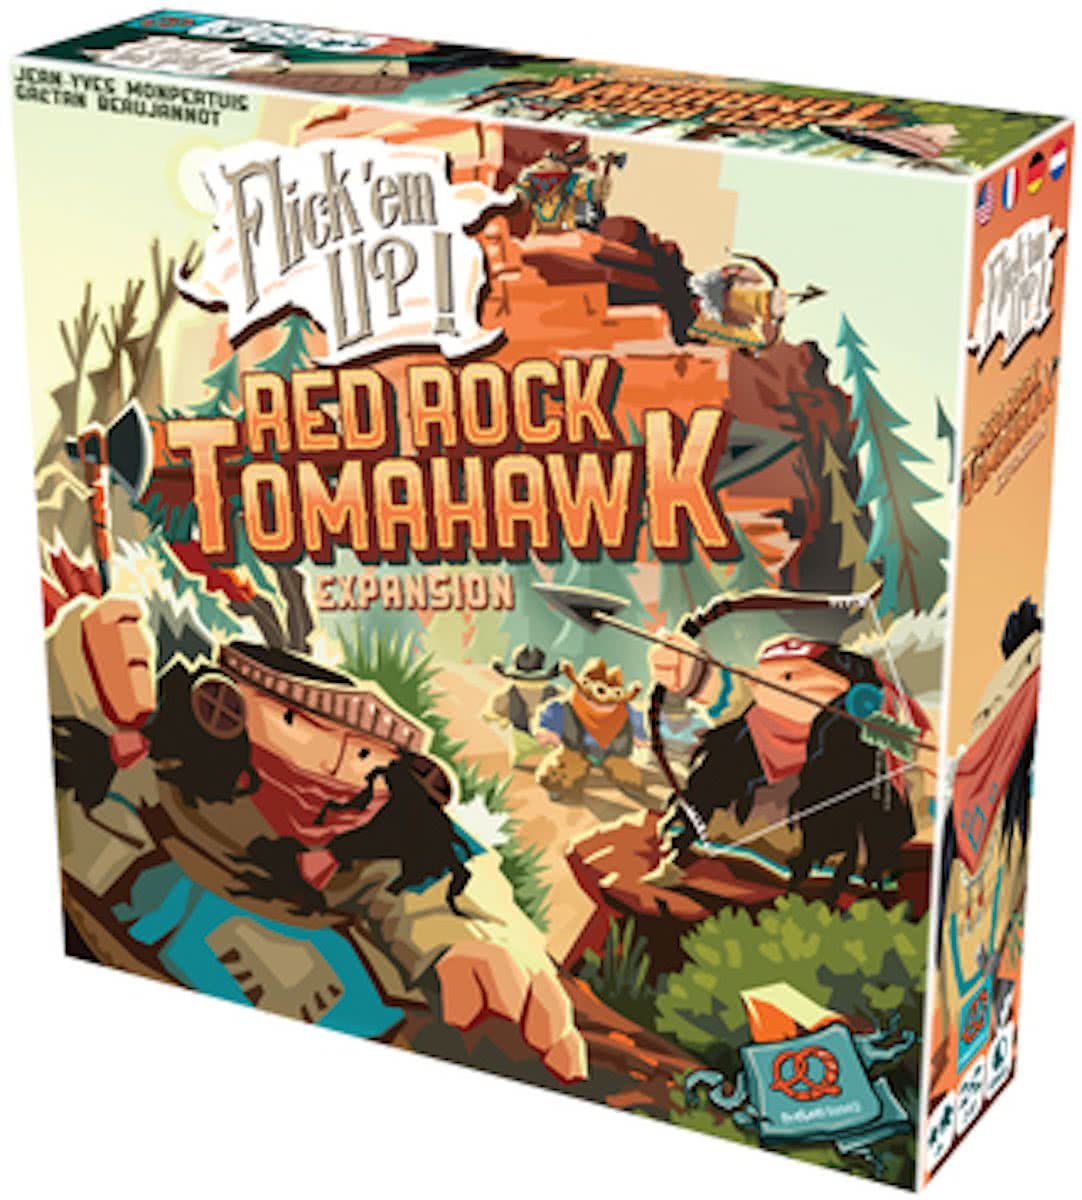 Flick em Up! Red Rock Tomahawk - Uitbreiding